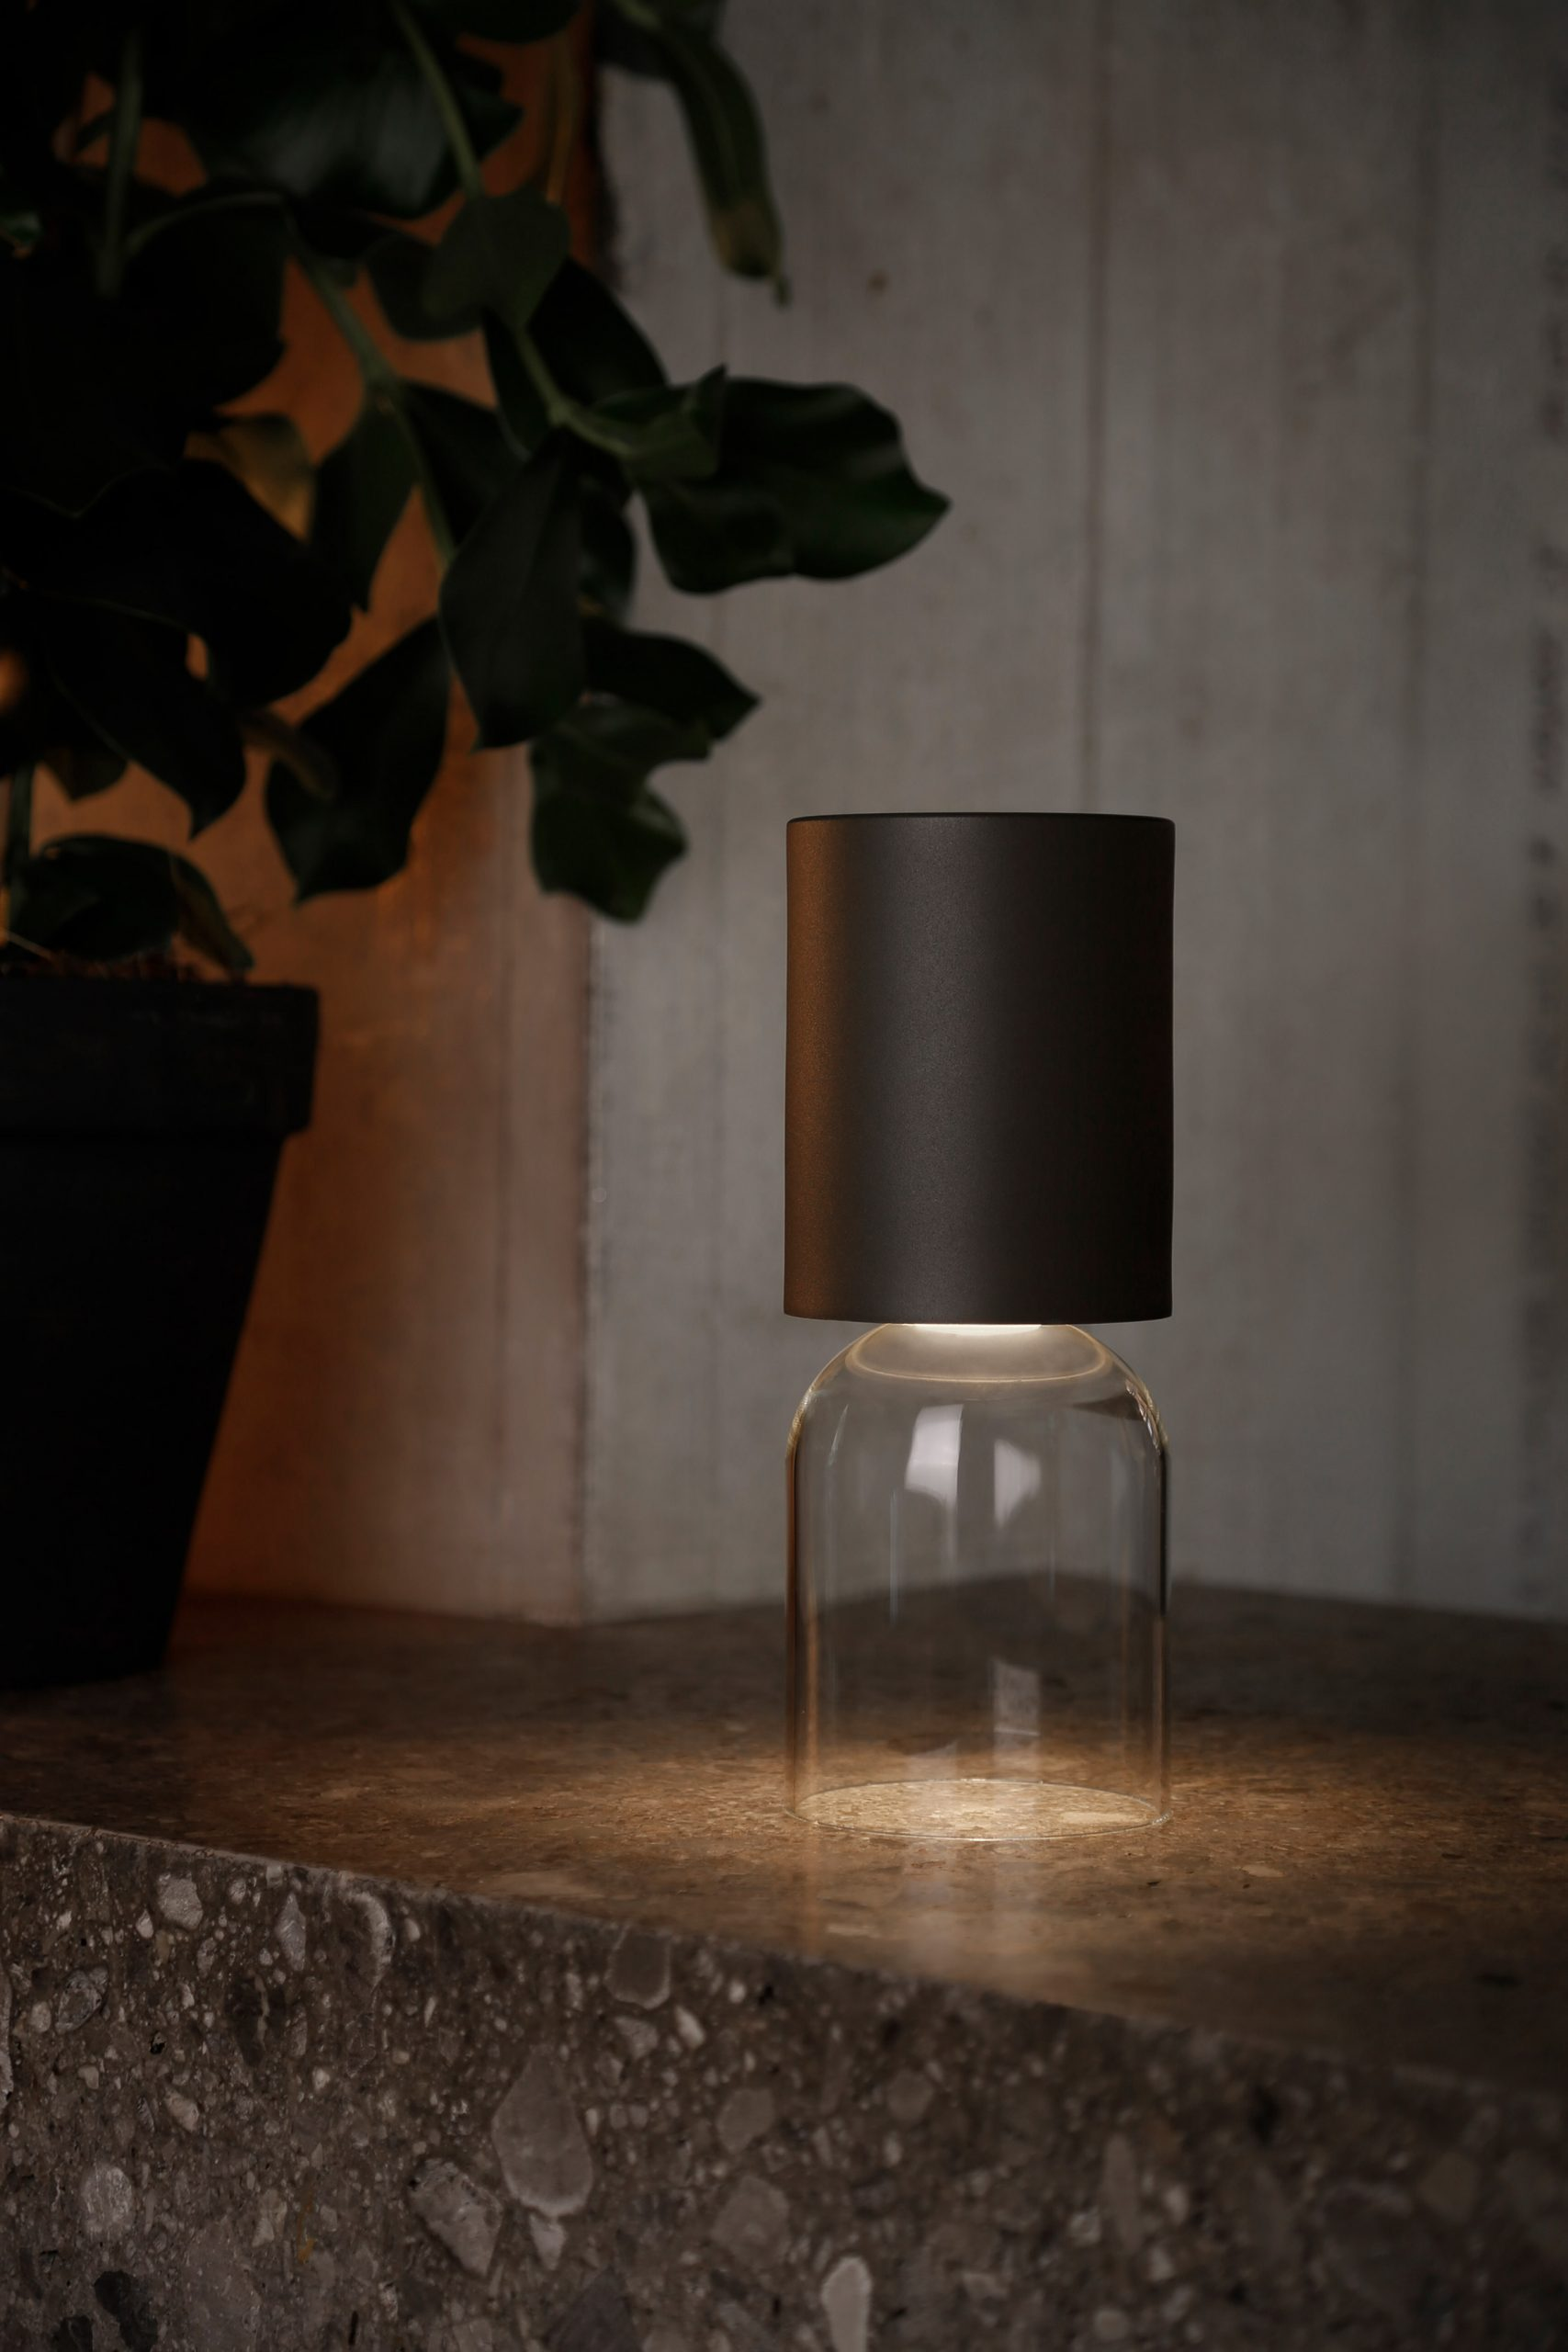 Nui mini light by Luceplan in an interior